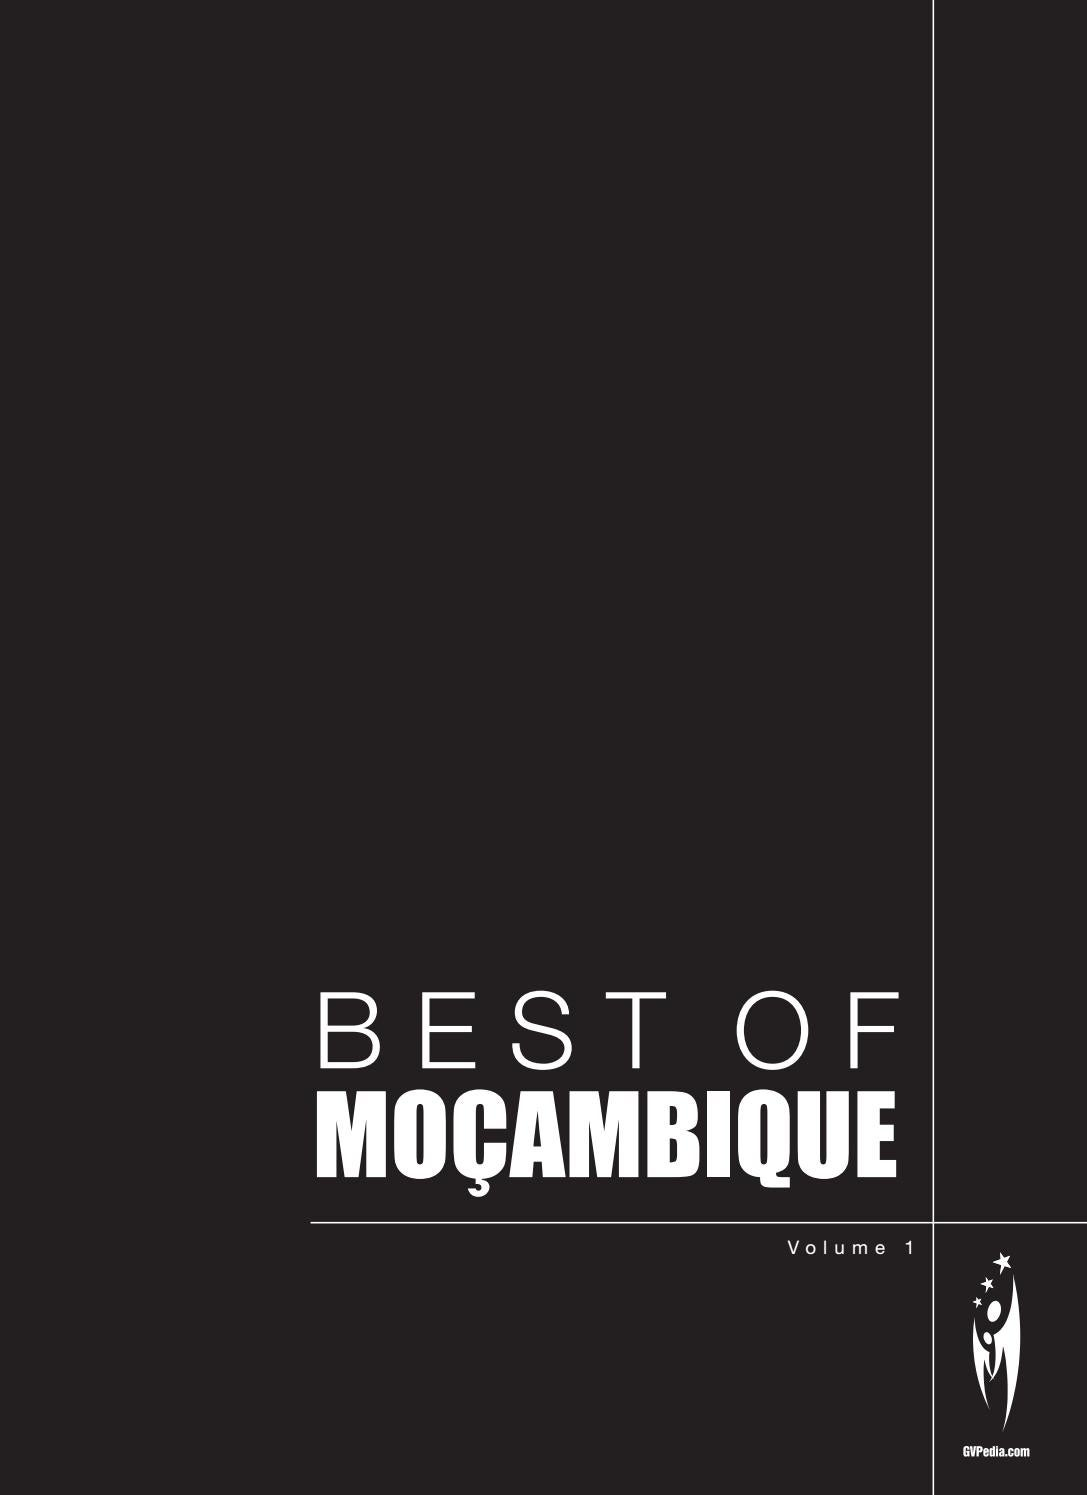 Best of mozambique volume 1 by sven boermeester issuu fandeluxe Images